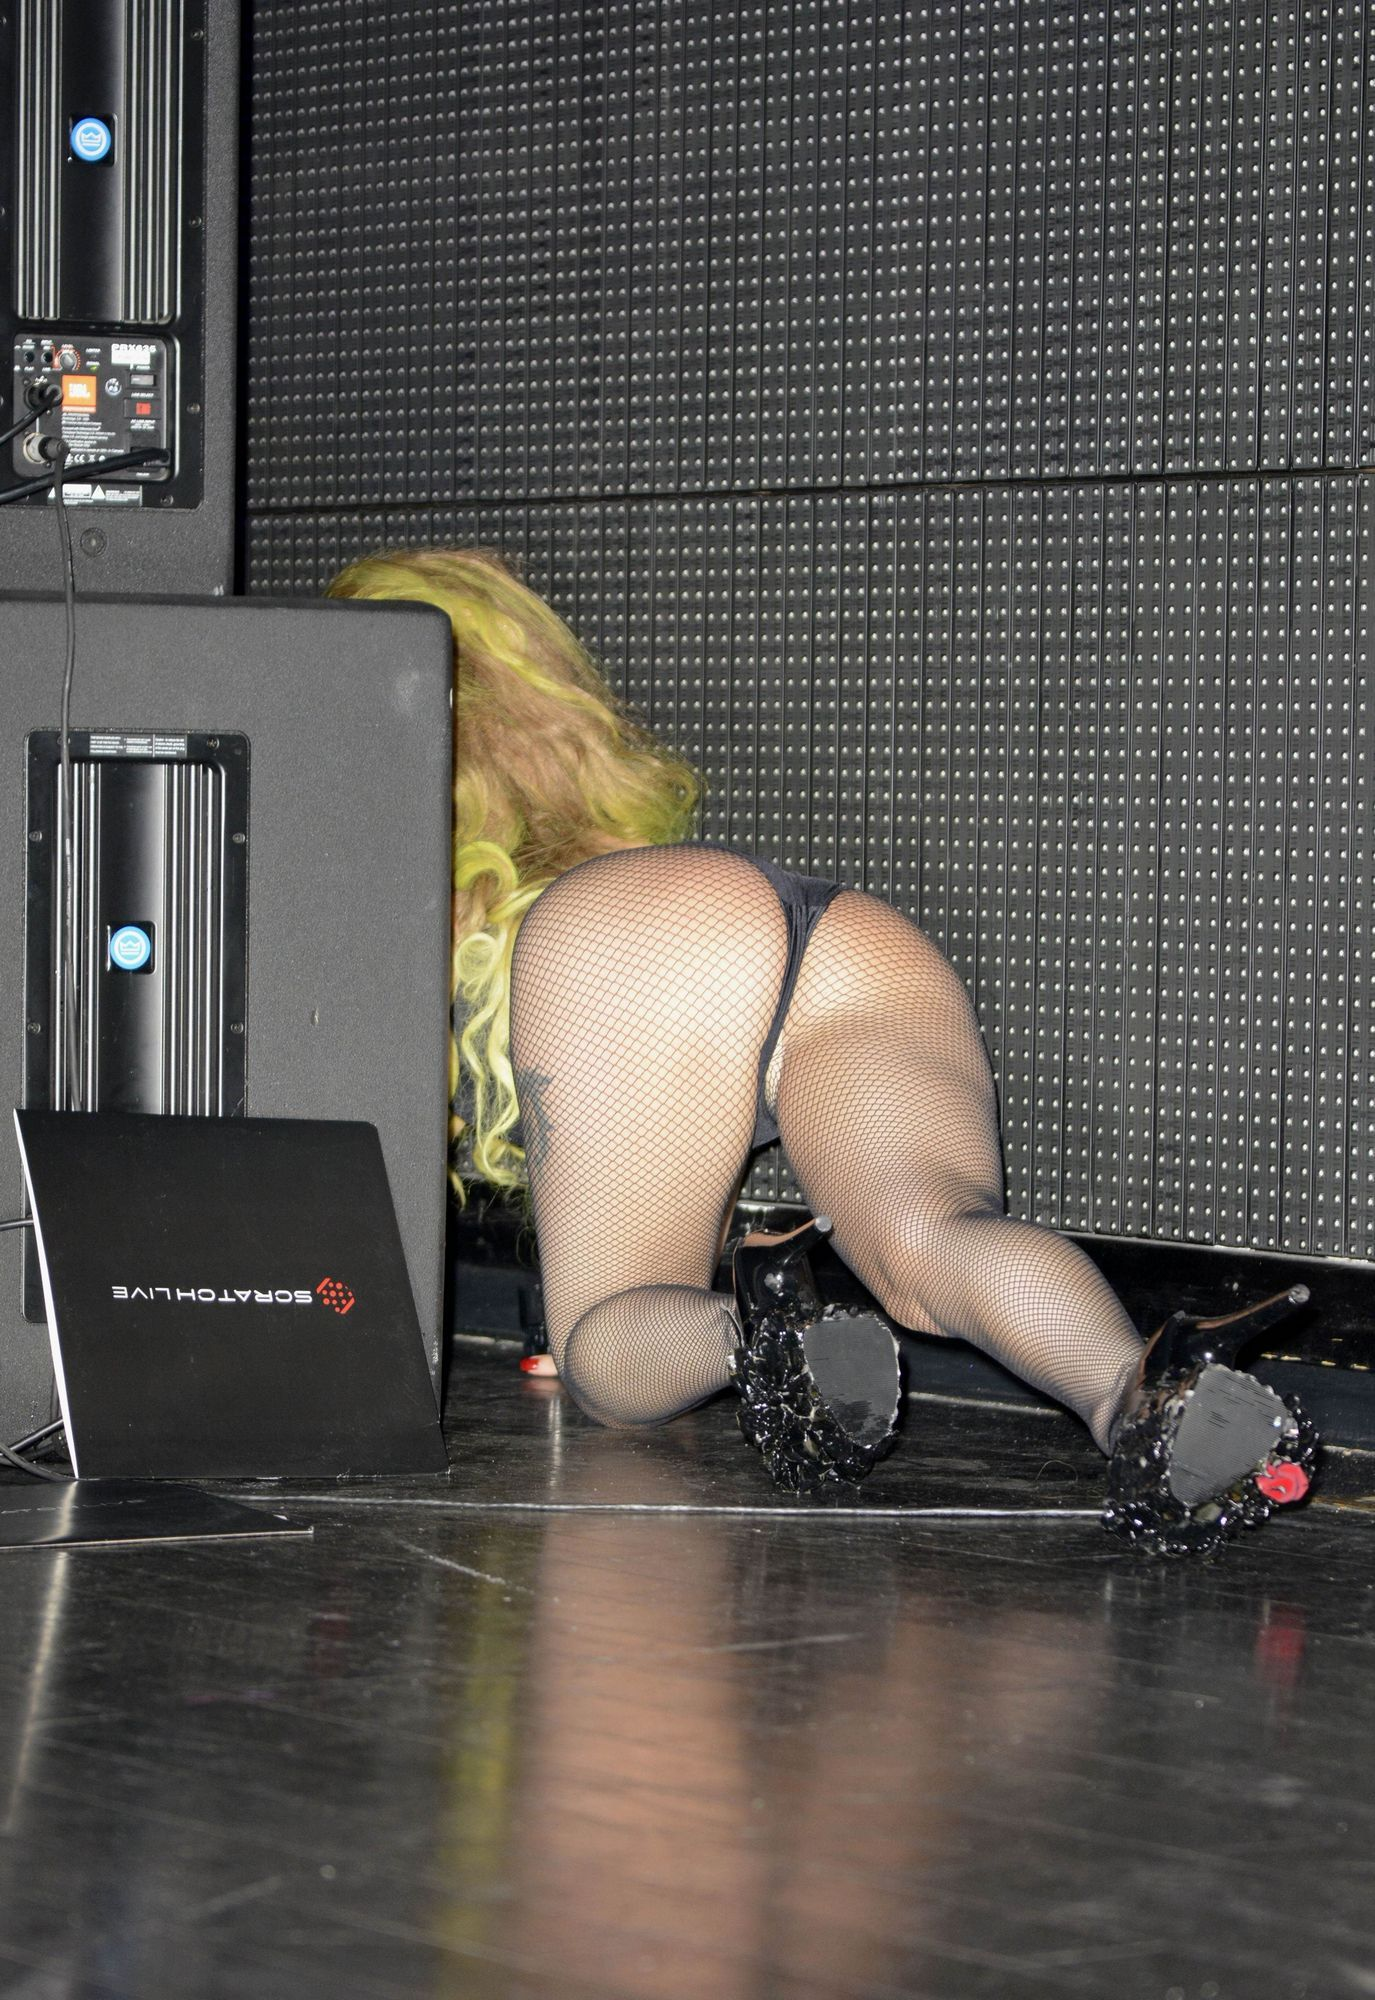 The Lady Gagabeyonce Telephone Photo Hits The Web